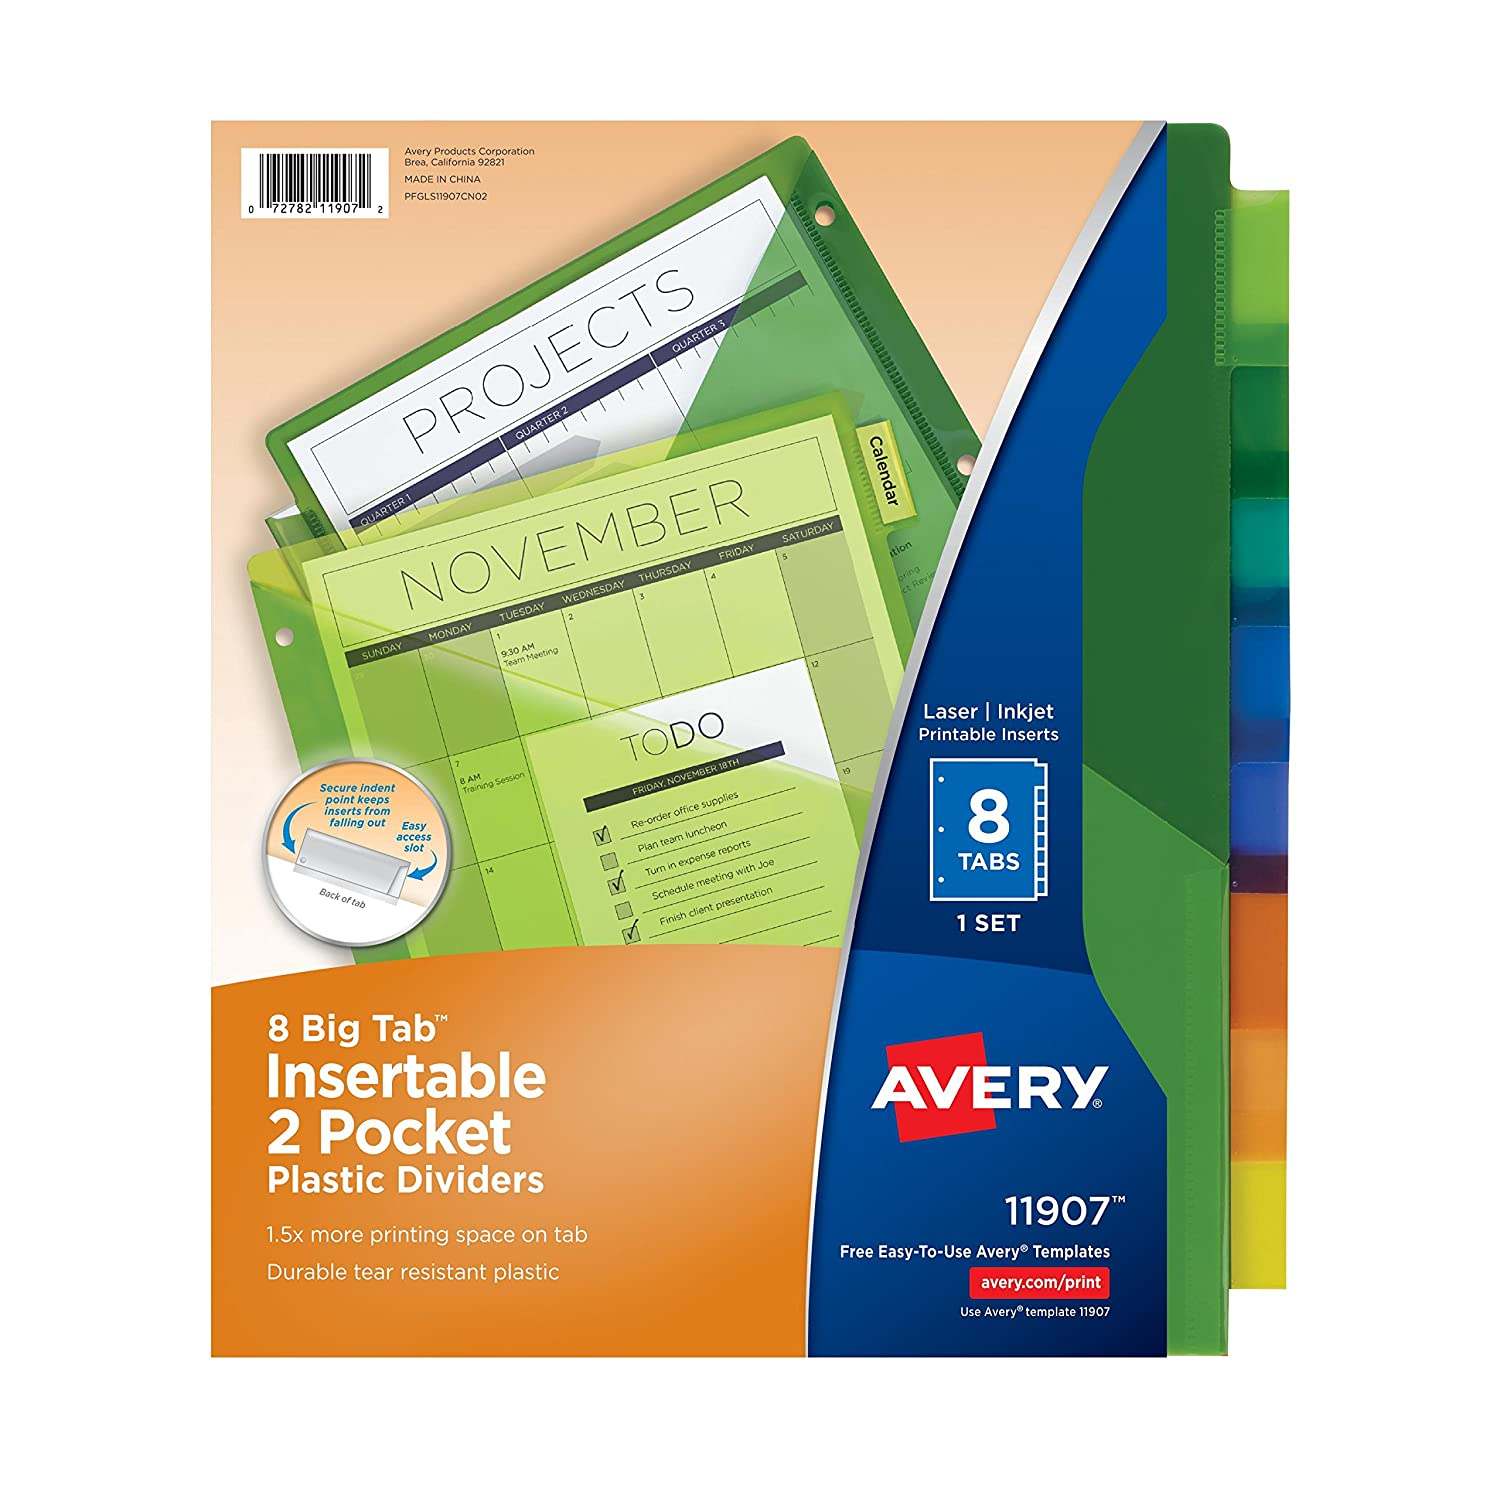 Avery big tab insertable two pocket plastic dividers 8 for Avery big tab inserts for dividers 8 tab template